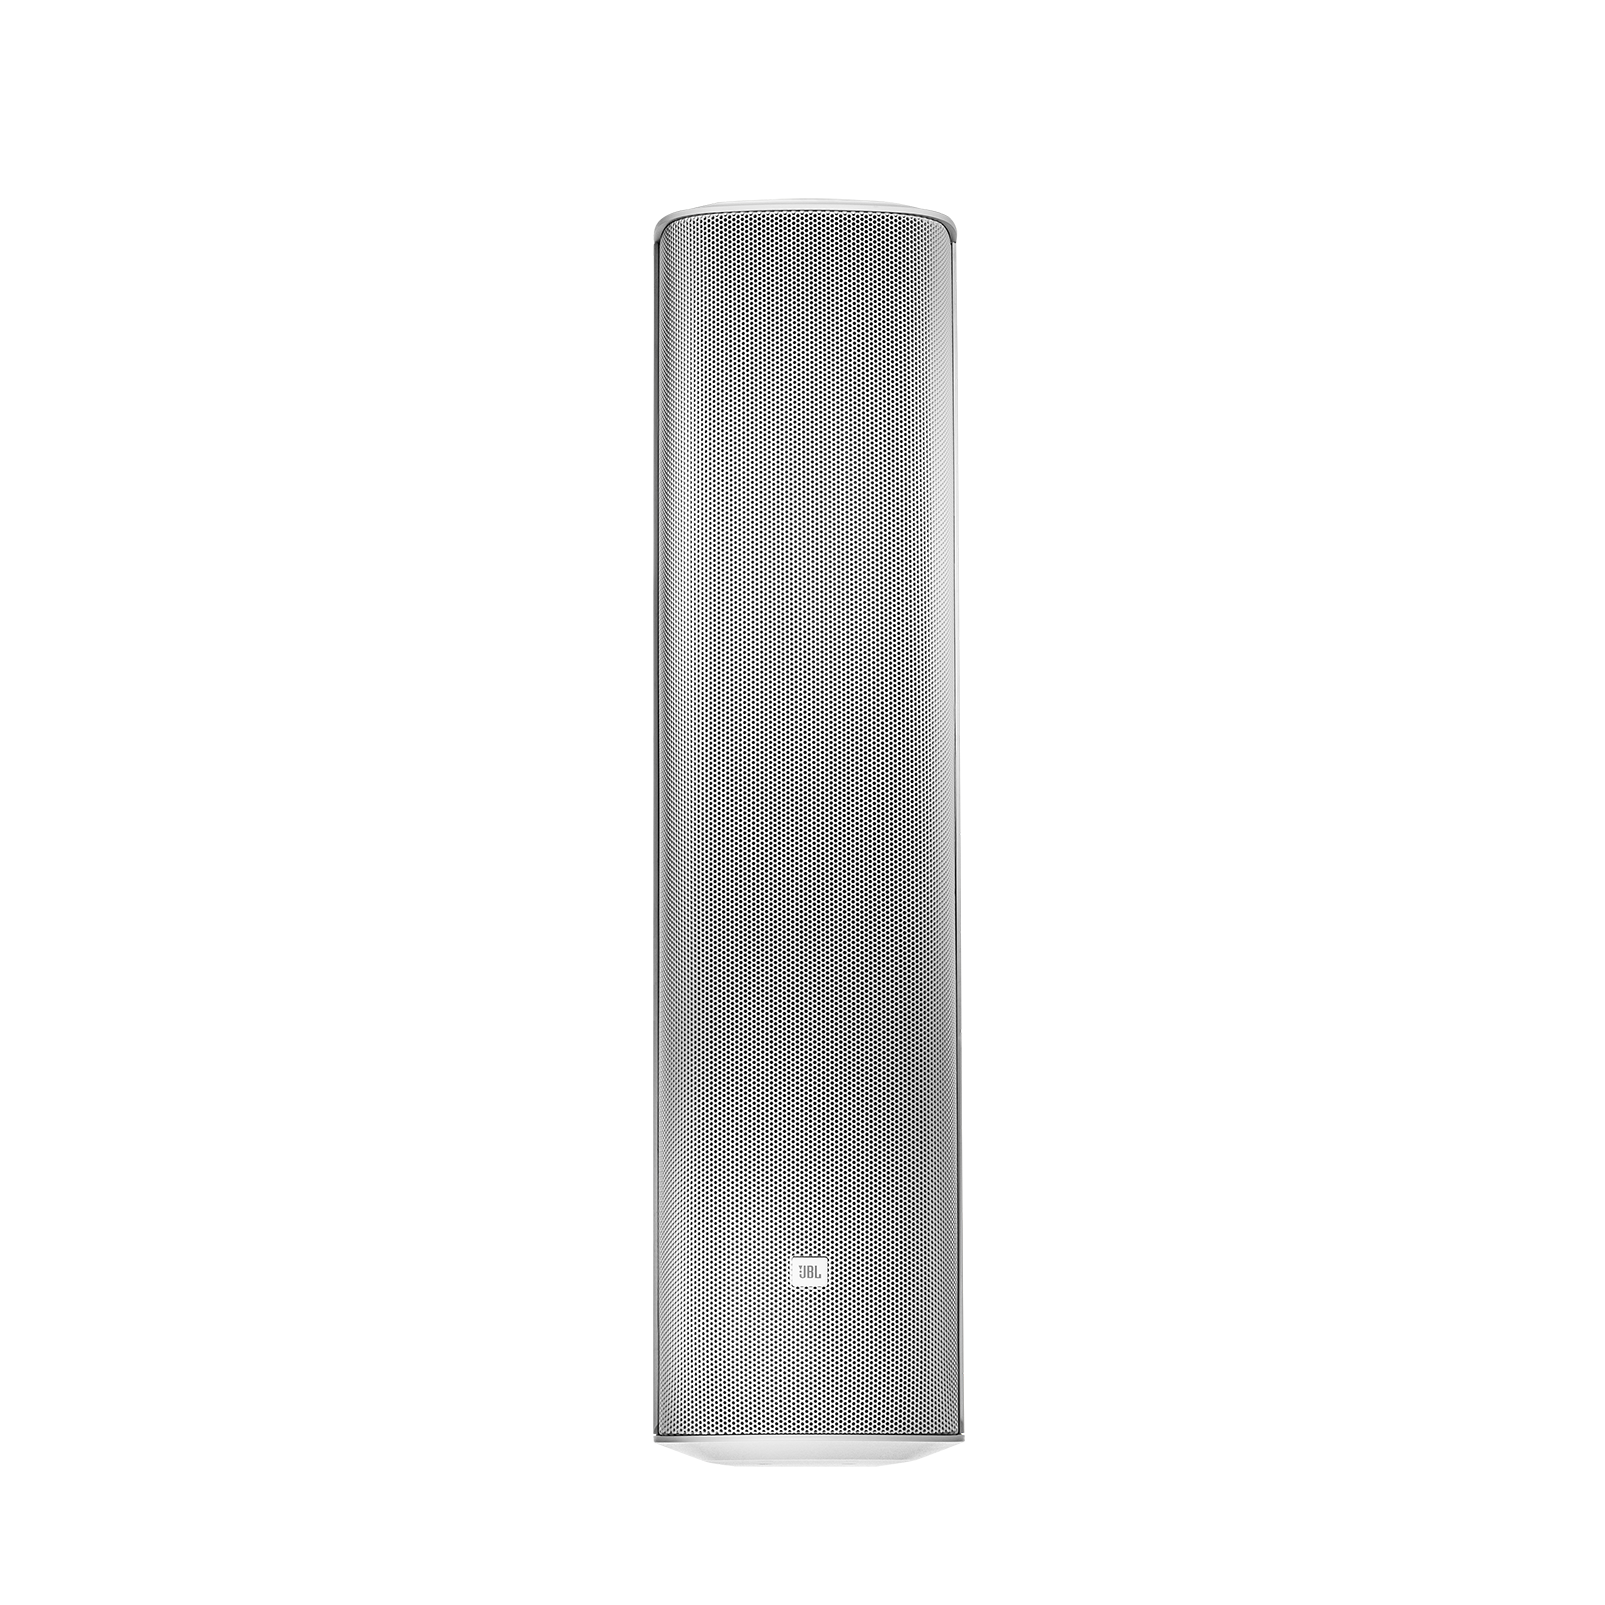 JBL CBT 1000 (B-Stock) - White - Constant Beamwidth Technology ™ Adjustable Coverage Line Array Column - Front